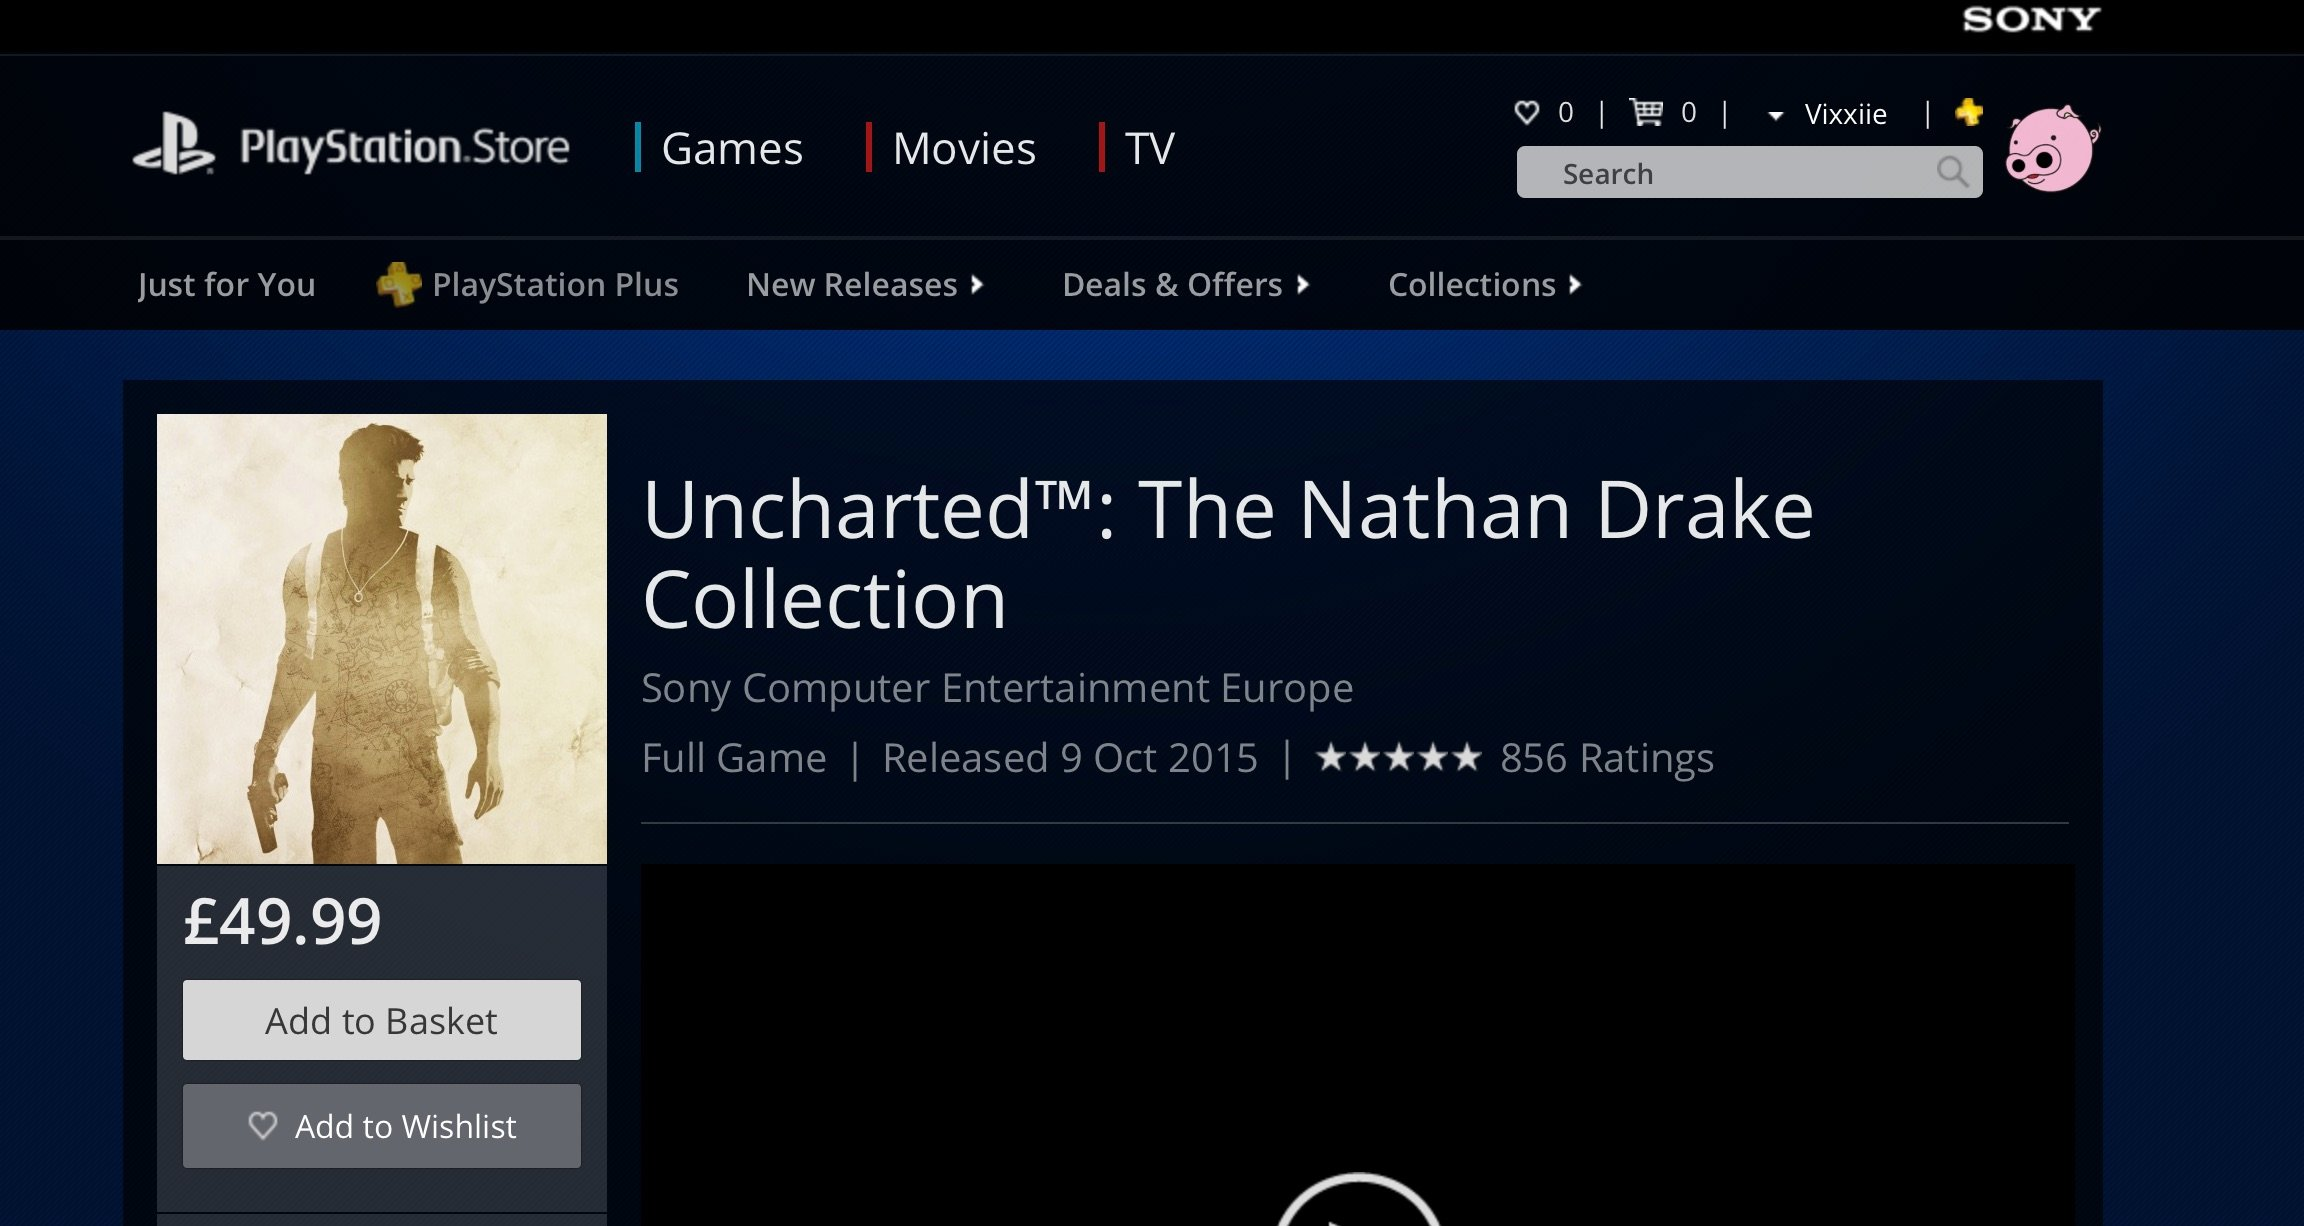 You can finally make a wishlist on the PSN Store